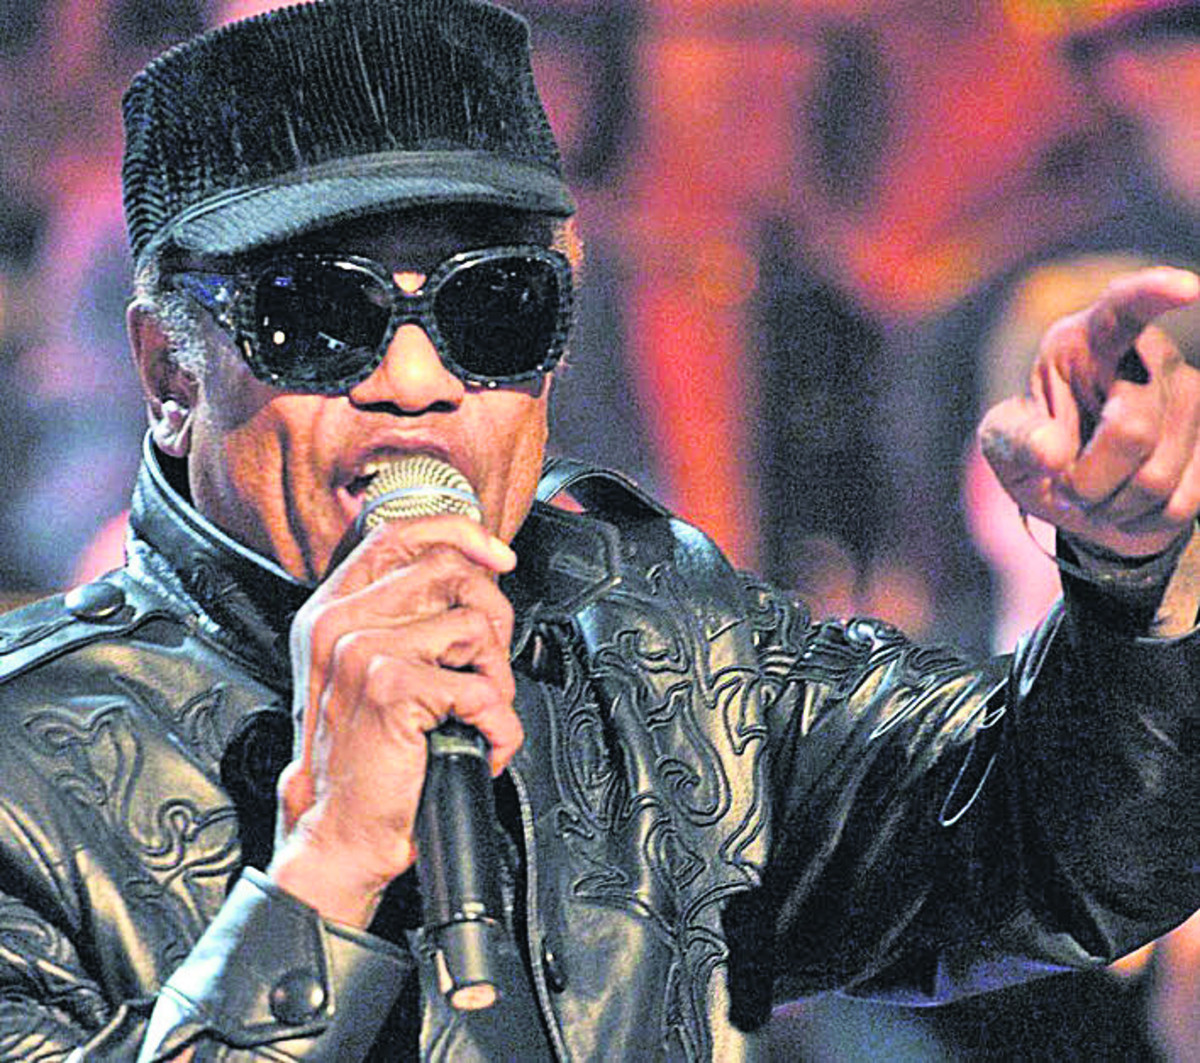 Soul legend Booby Womack has died just weeks ahead of the festival